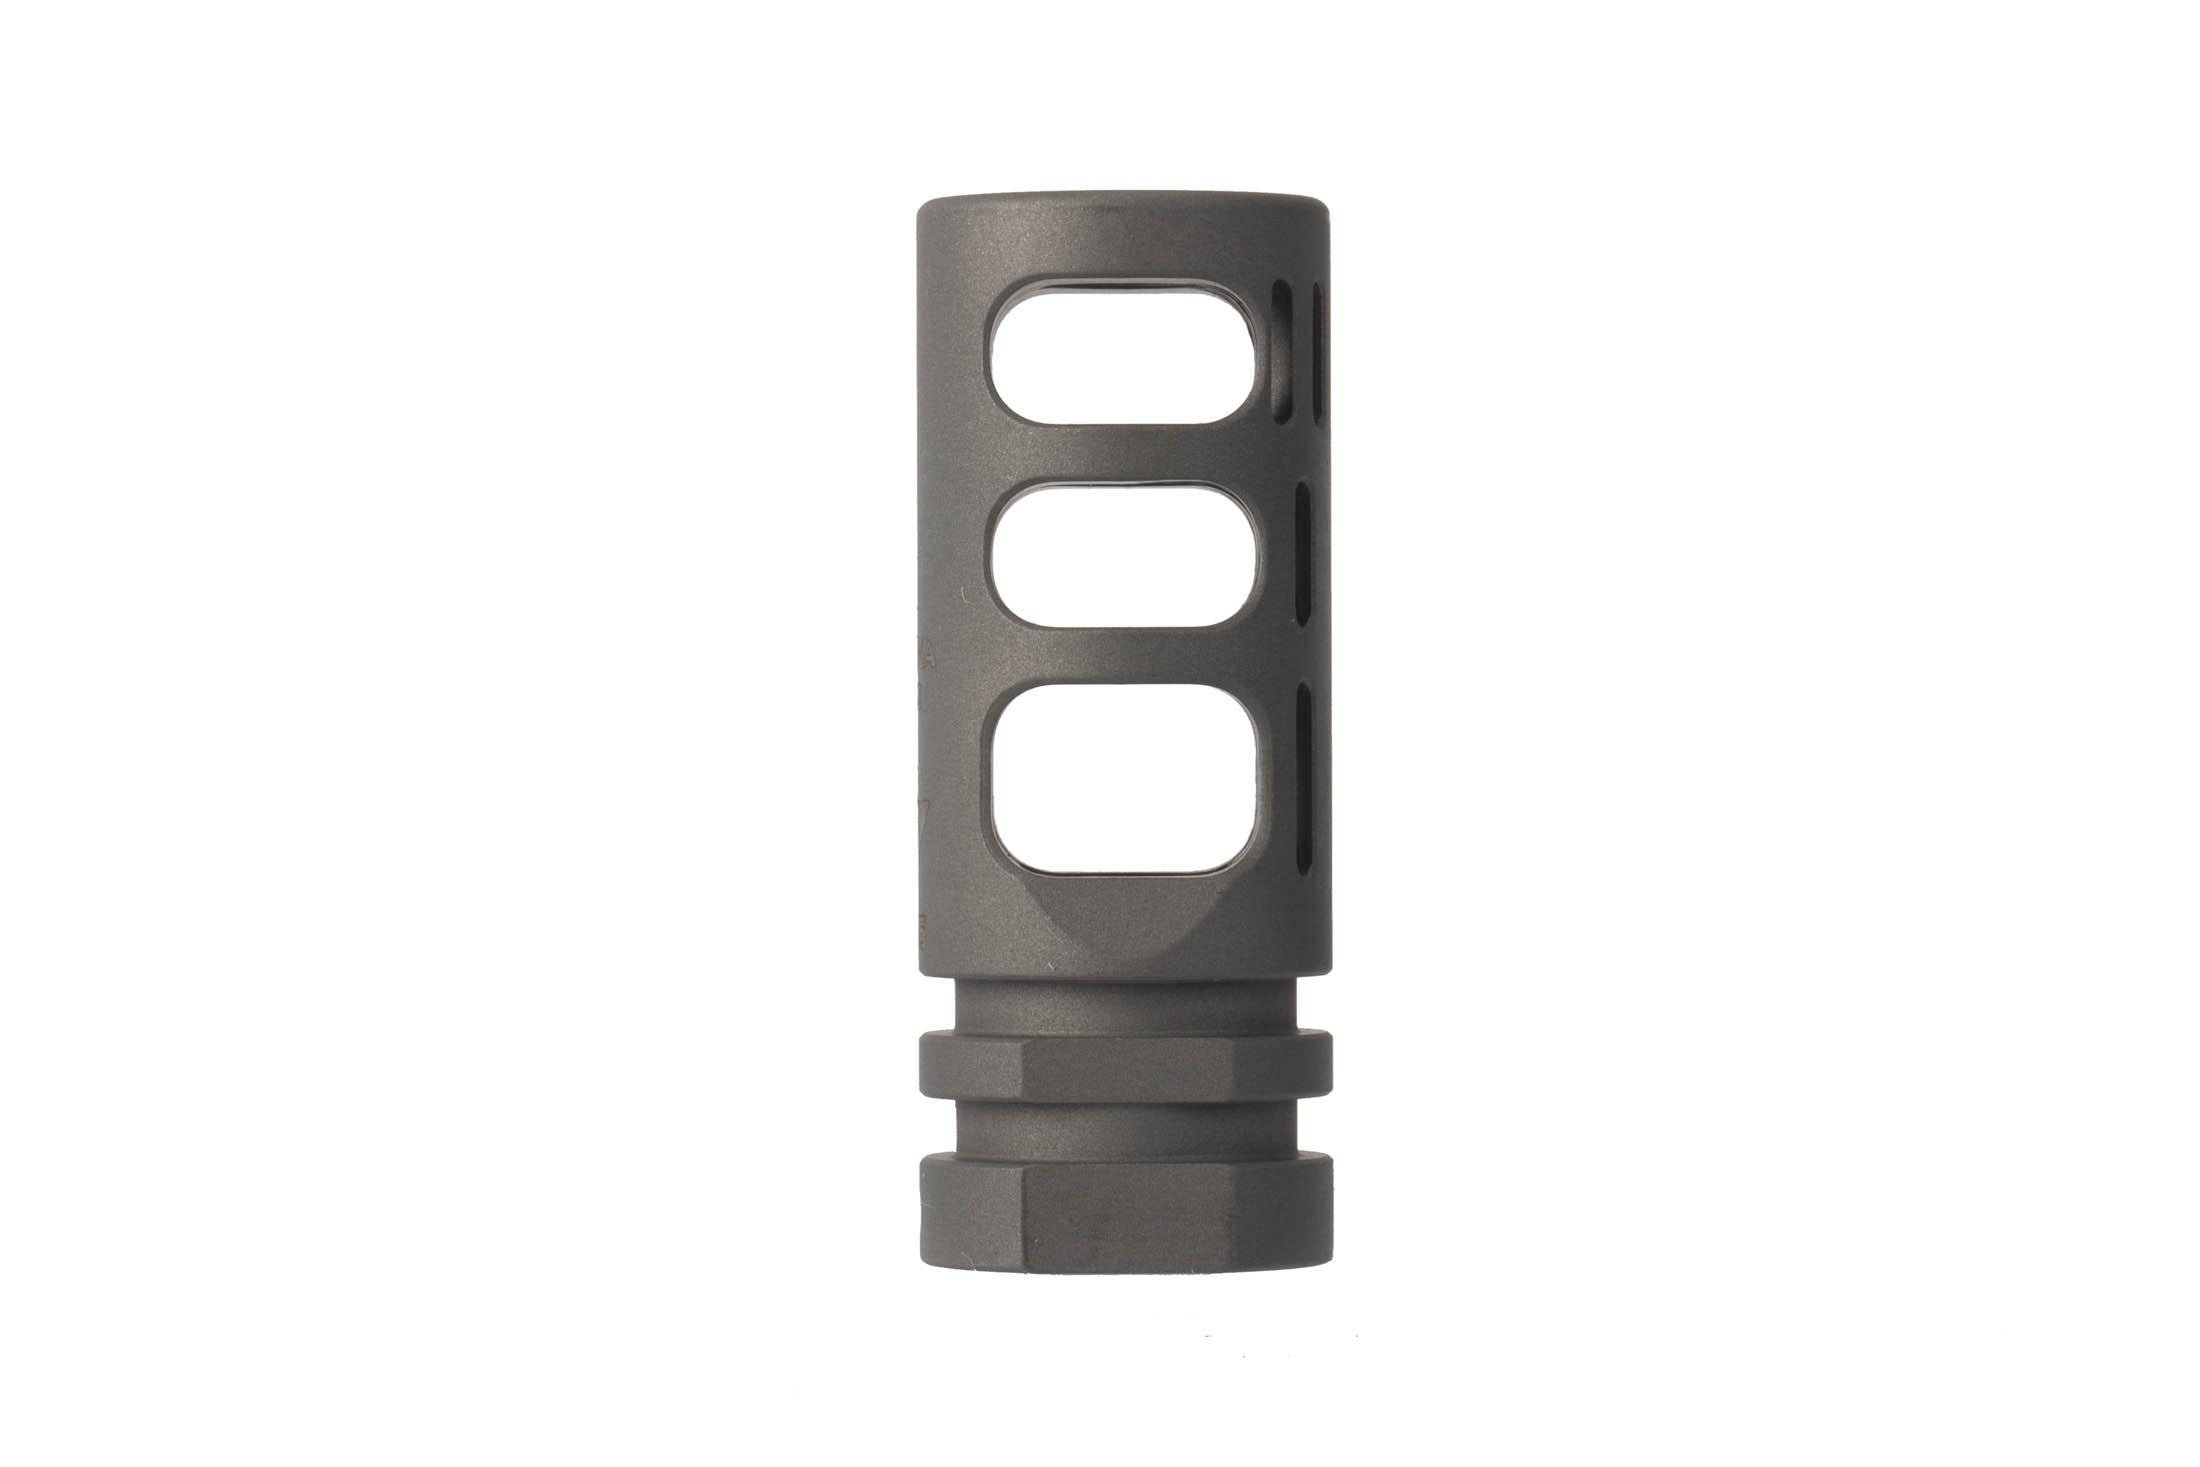 The VG6 Precision Gamma 762 High Performance Muzzle Brake is 2.21 inches in length